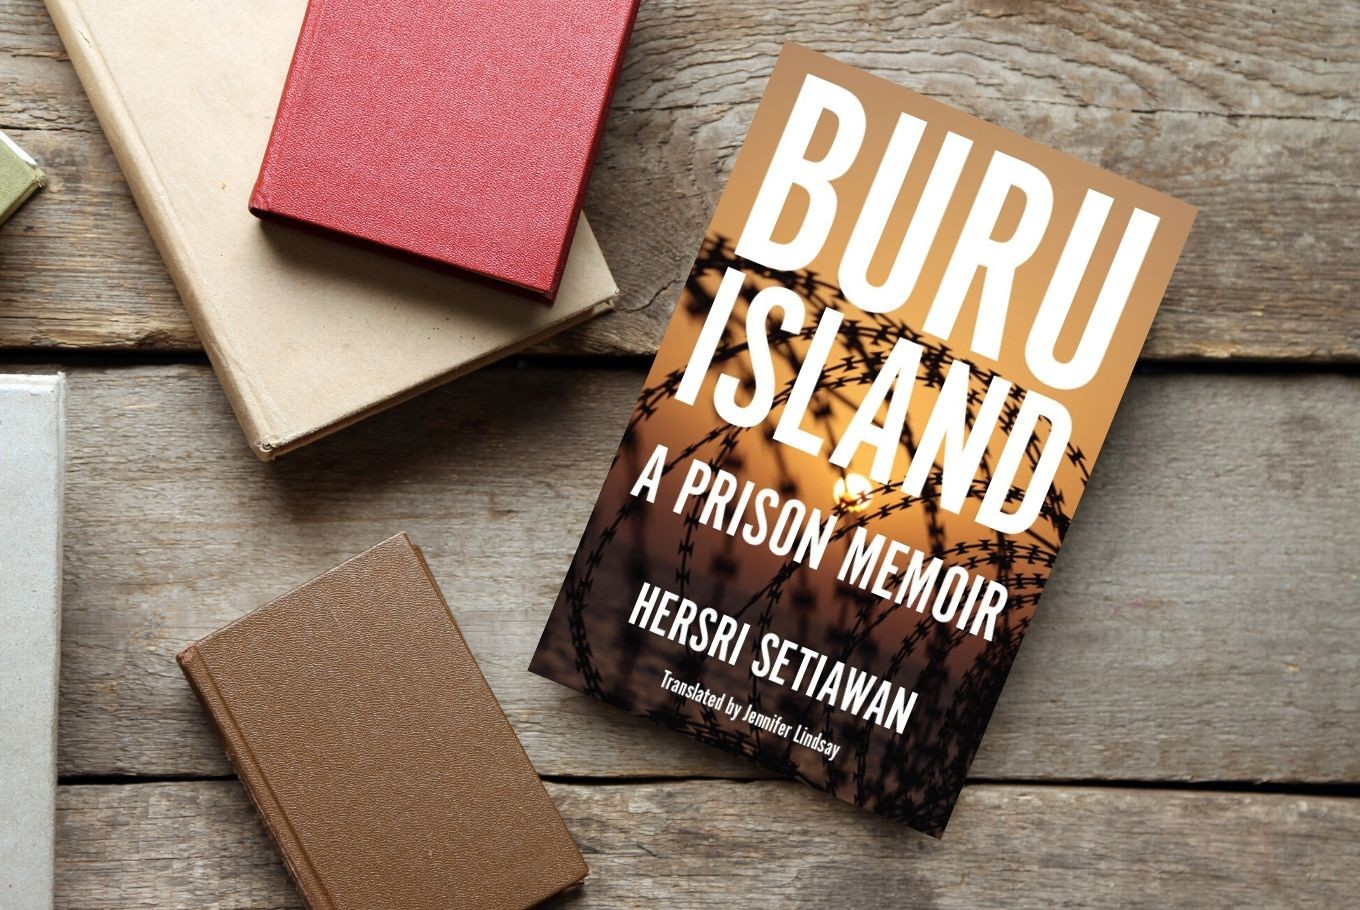 'Buru Island: A Prison Memoir' now available for English readers